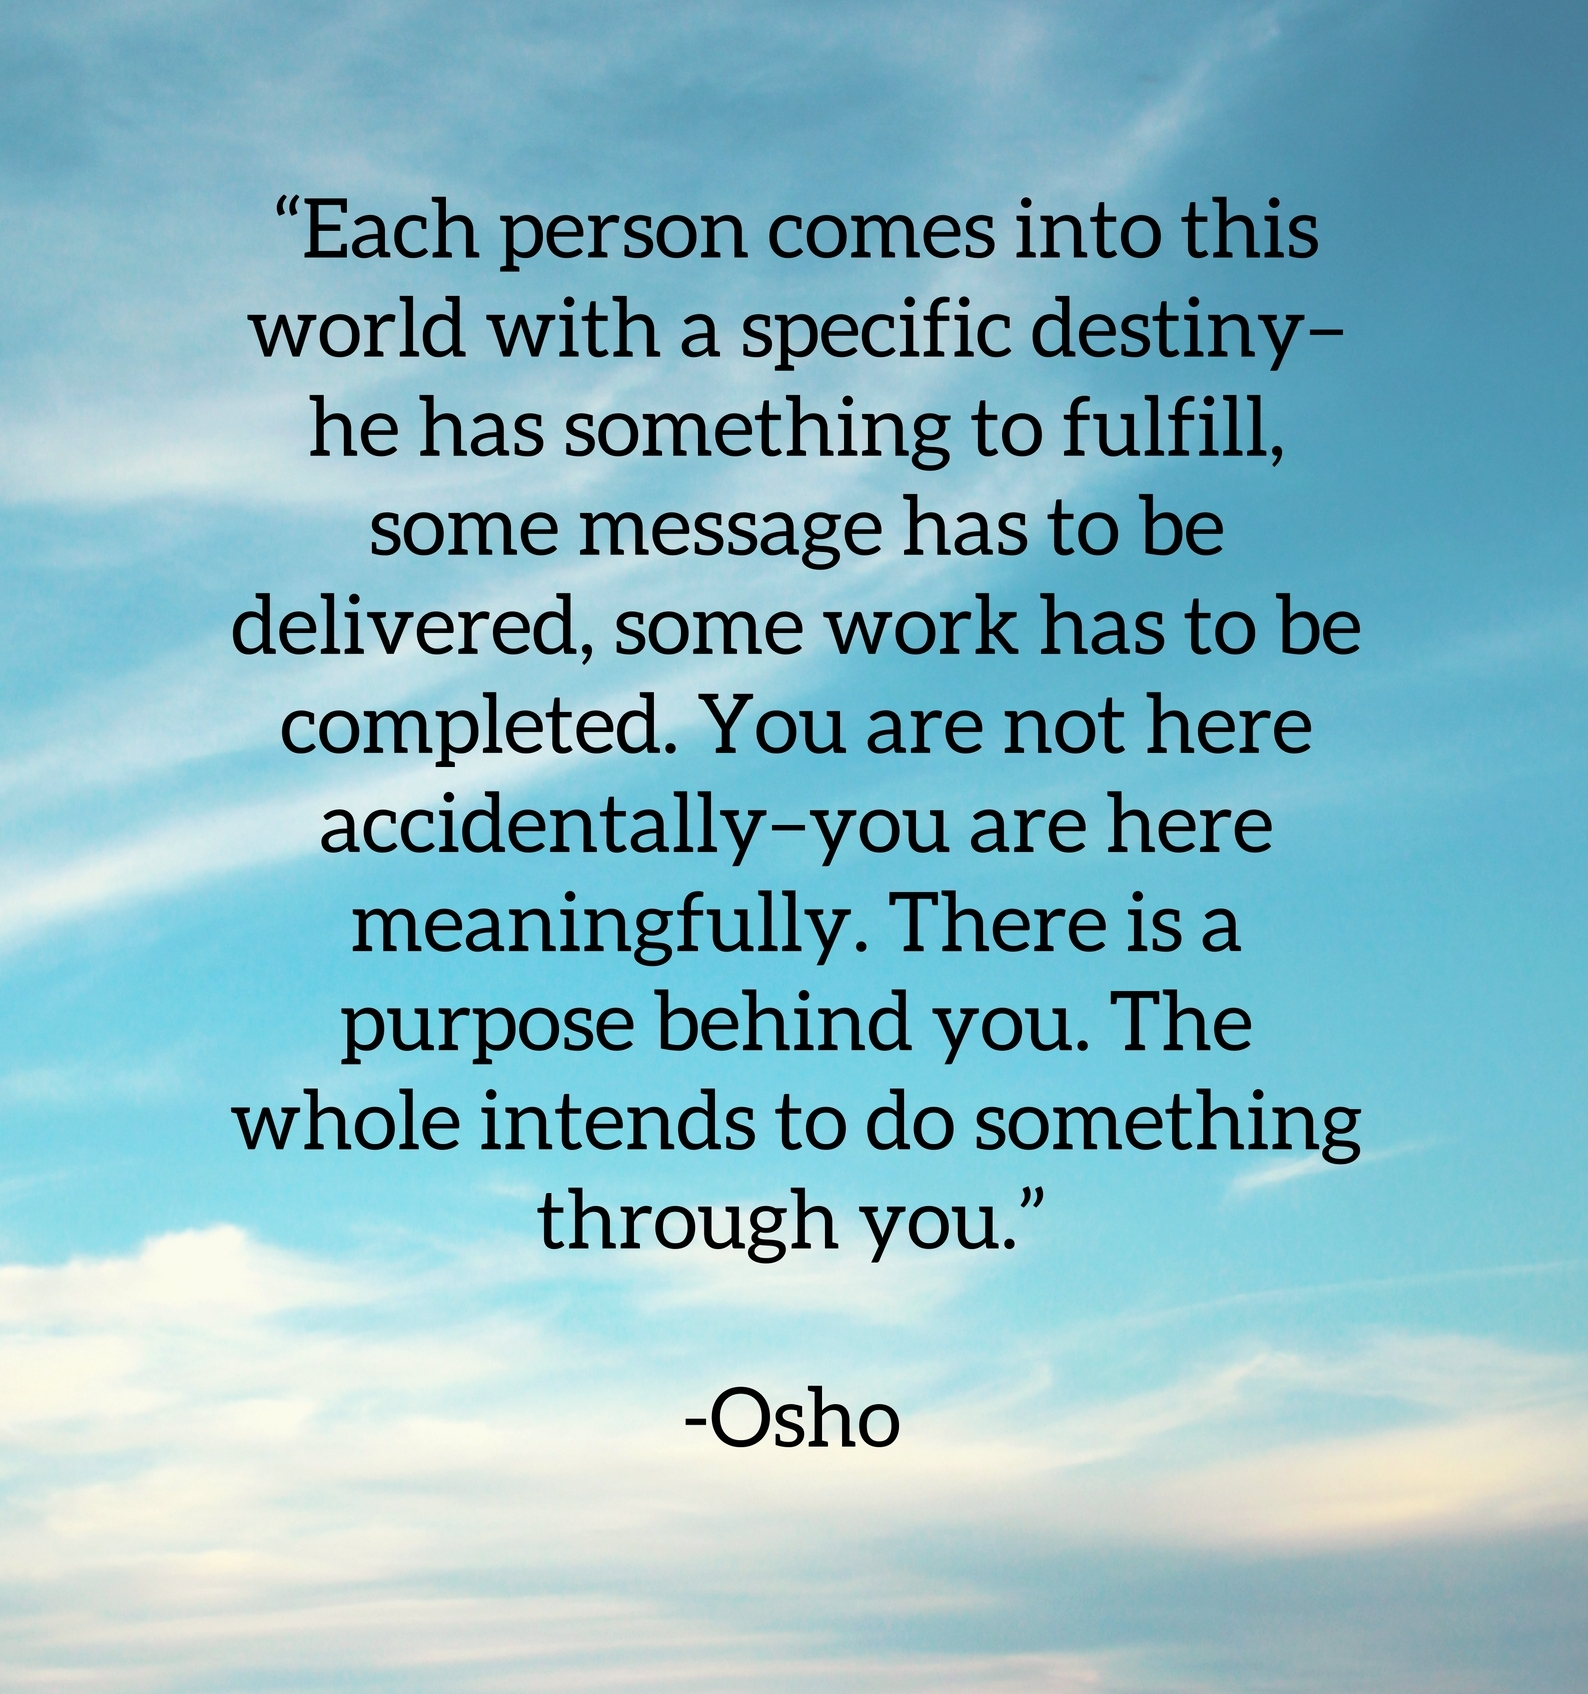 Osho quote about your life purpose. Each person comes into this world with a specific destiny, he has something to fulfill, some message has to be delivered, some work has to be completed. You are not here accidentally, you are here meaningfully. There is a purpose behind you. There whole intends to do something through you.